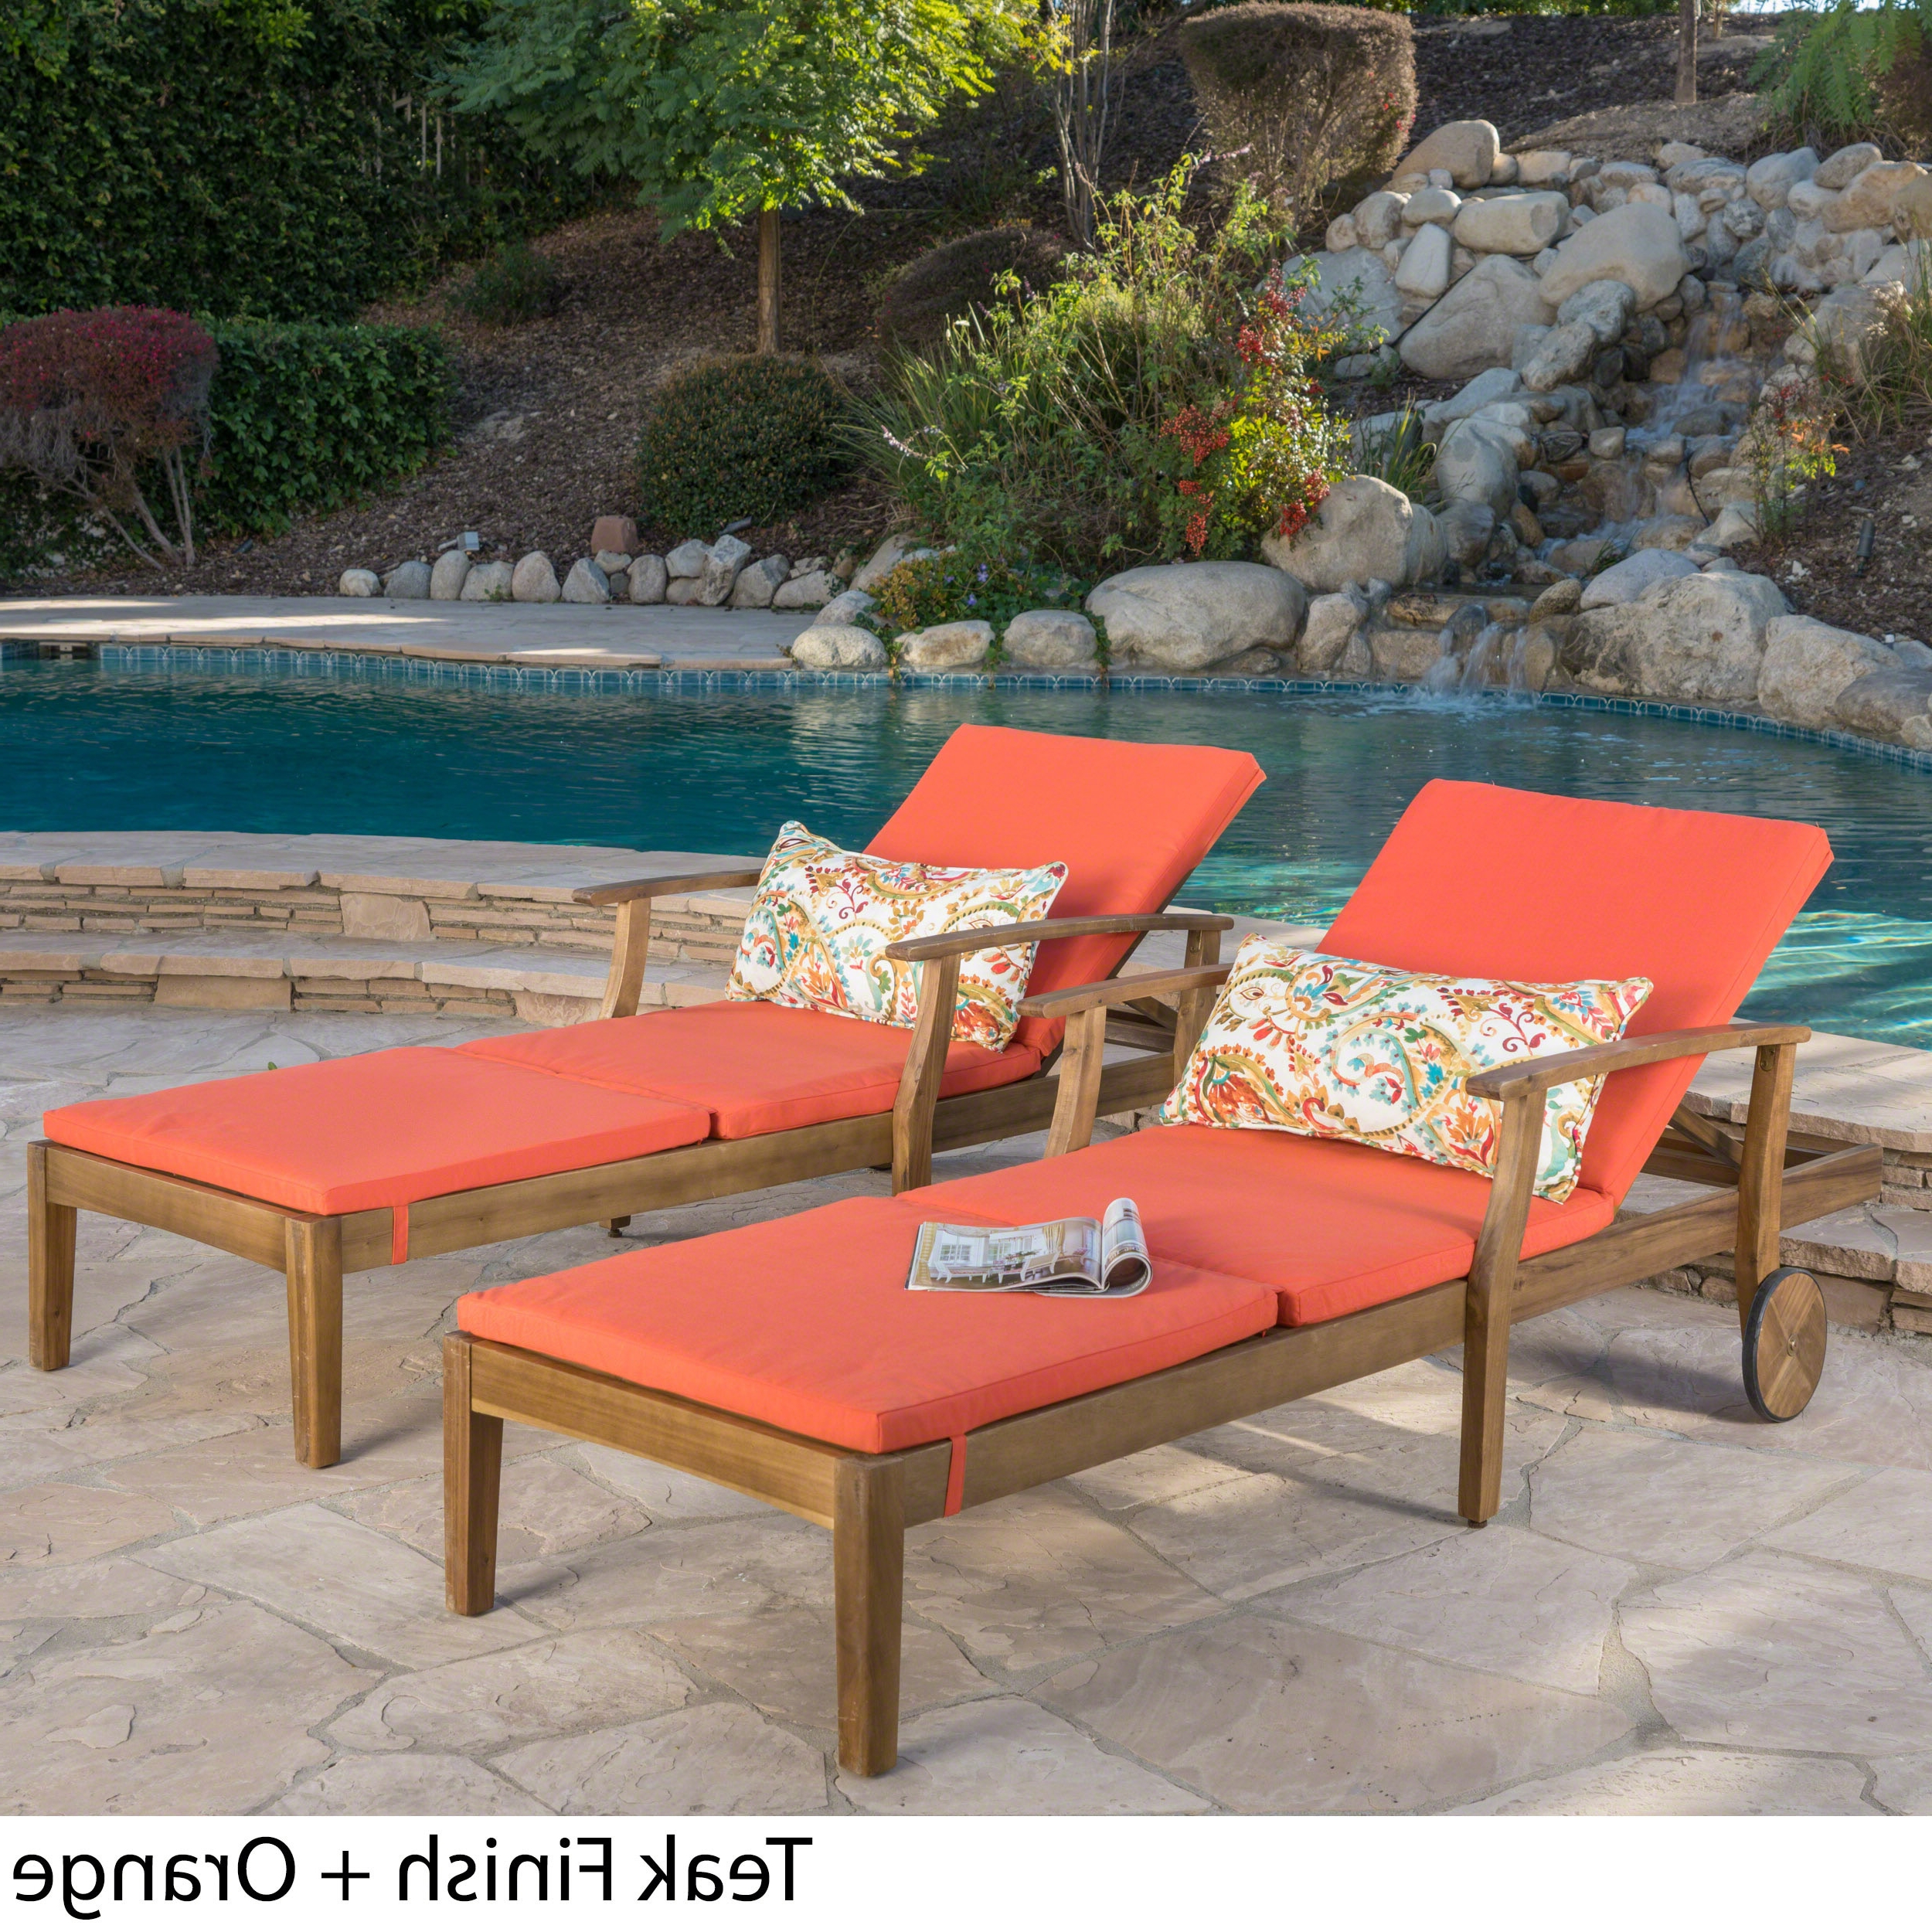 Oudoor Modern Acacia Wood Chaise Lounges With Cushion Throughout Best And Newest Christopher Knight Home Perla Outdoor Acacia Wood Chaise Lounge With Cushion (set Of 2) By (Gallery 6 of 25)